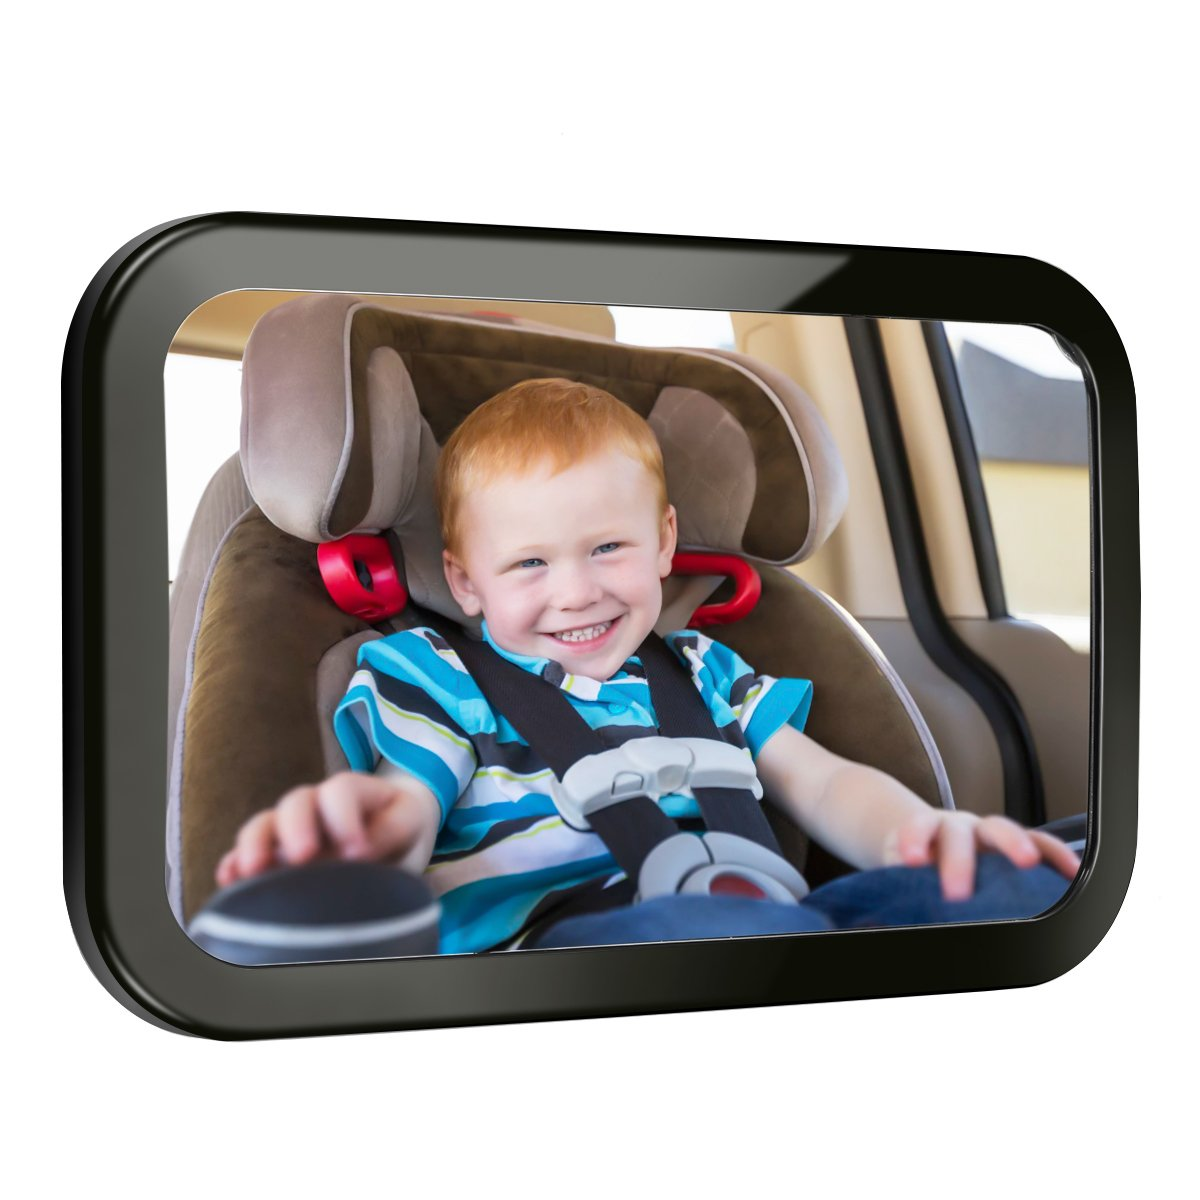 Yoolight Baby Car Rearview Mirror Back Seat Rear View Facing Infant in Sight Adjustable 2 Shatterproof and Crash Tested Mirror